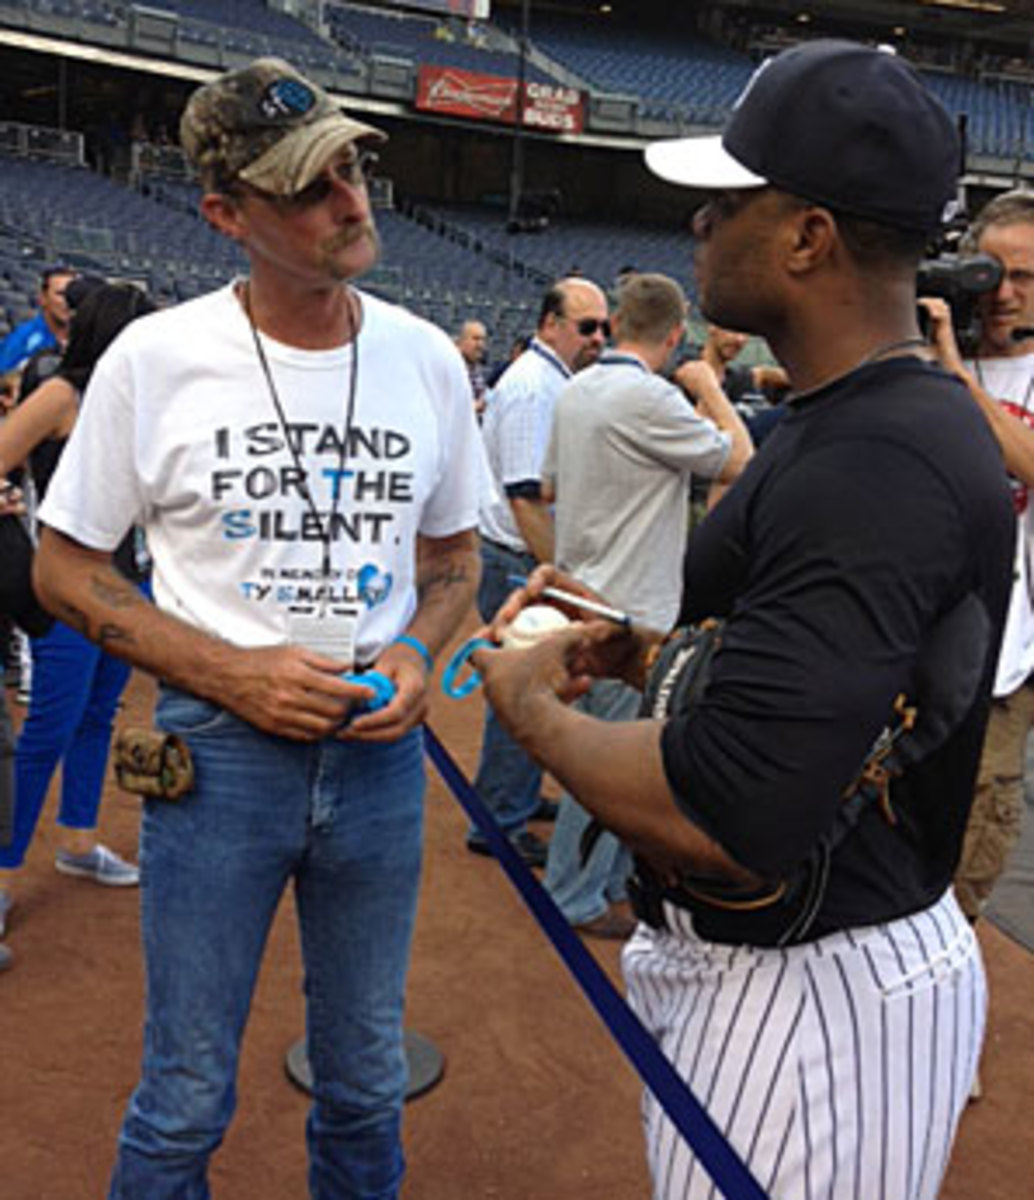 Kirk Smalley met with Robinson Cano, among other Yankees, during last week's visit.